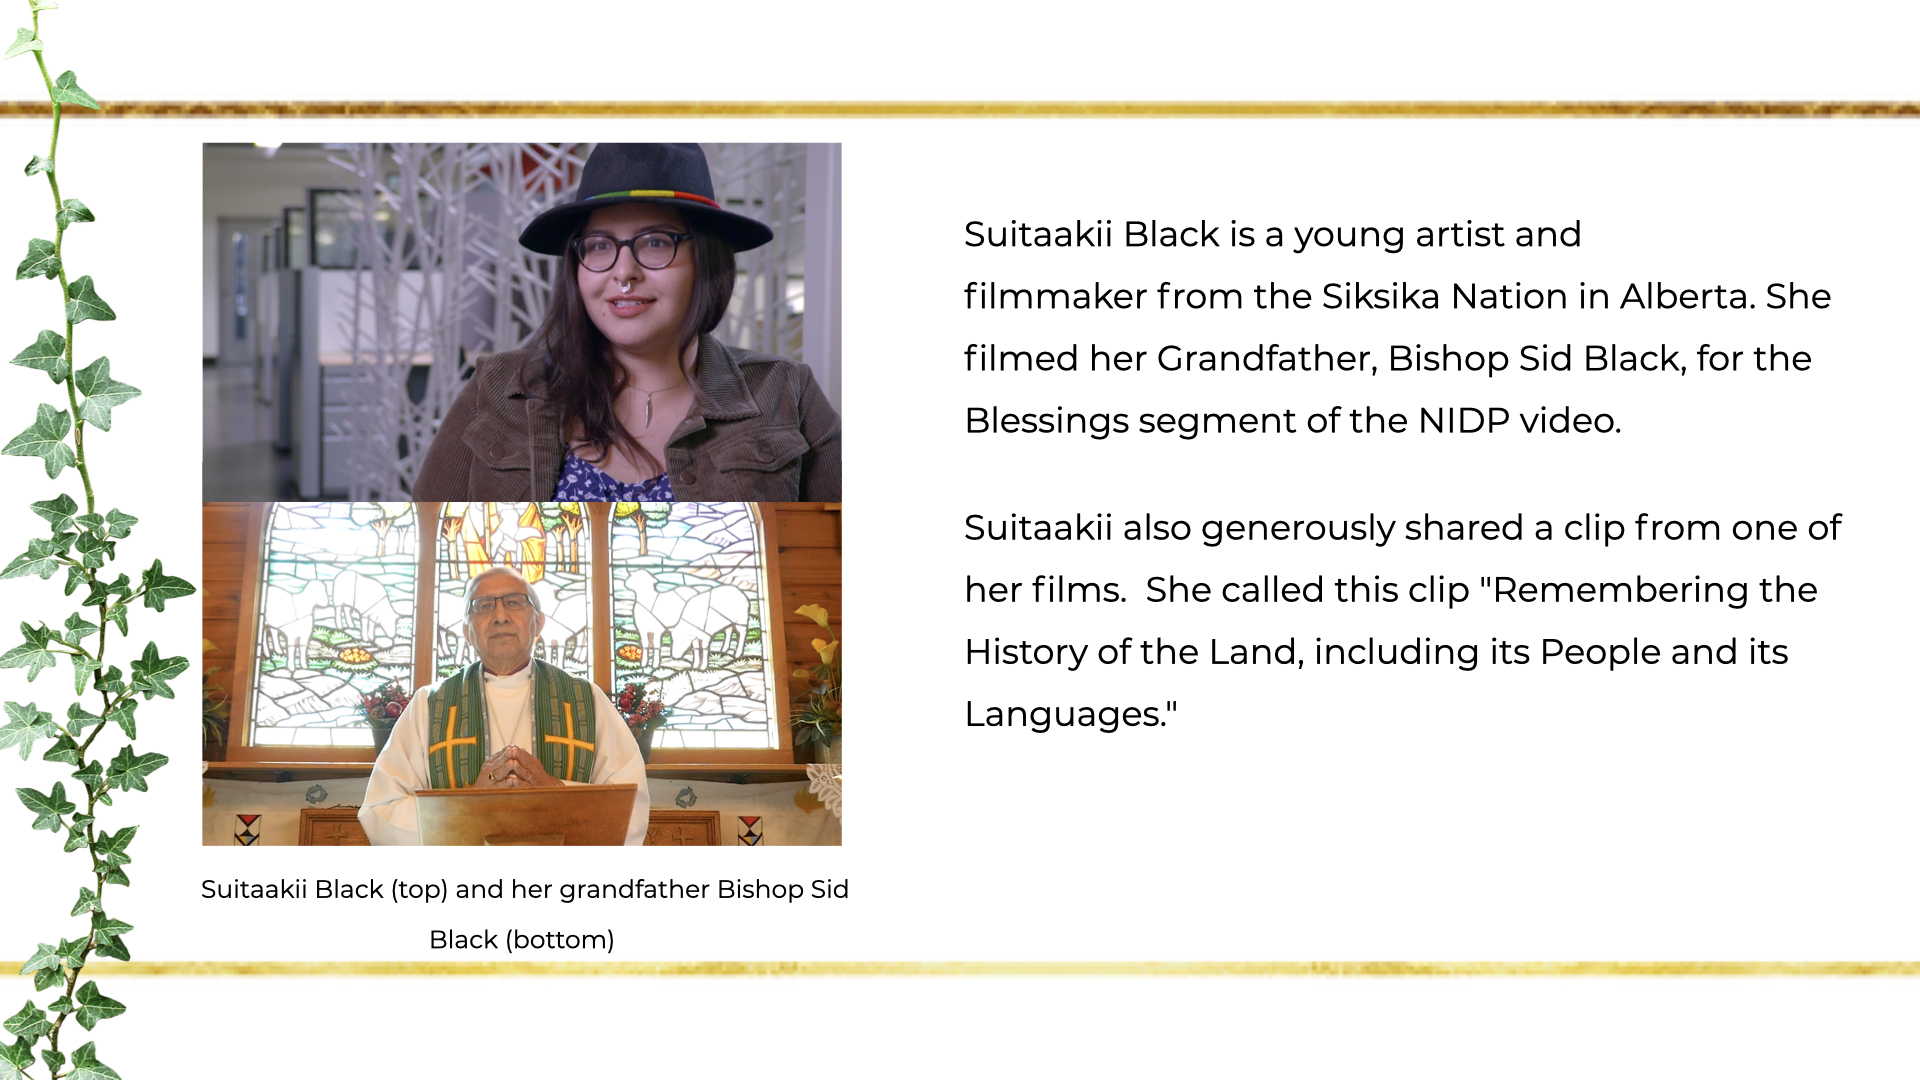 Suitaakii Black is a young artist and filmmaker from the Siksika Nation in Alberta. She filmed her Grandfather, Bishop Sid Black, for the Blessings segment of the NIDP video.  Suitaakii also generously shared a clip from one of her films.  She called this clip